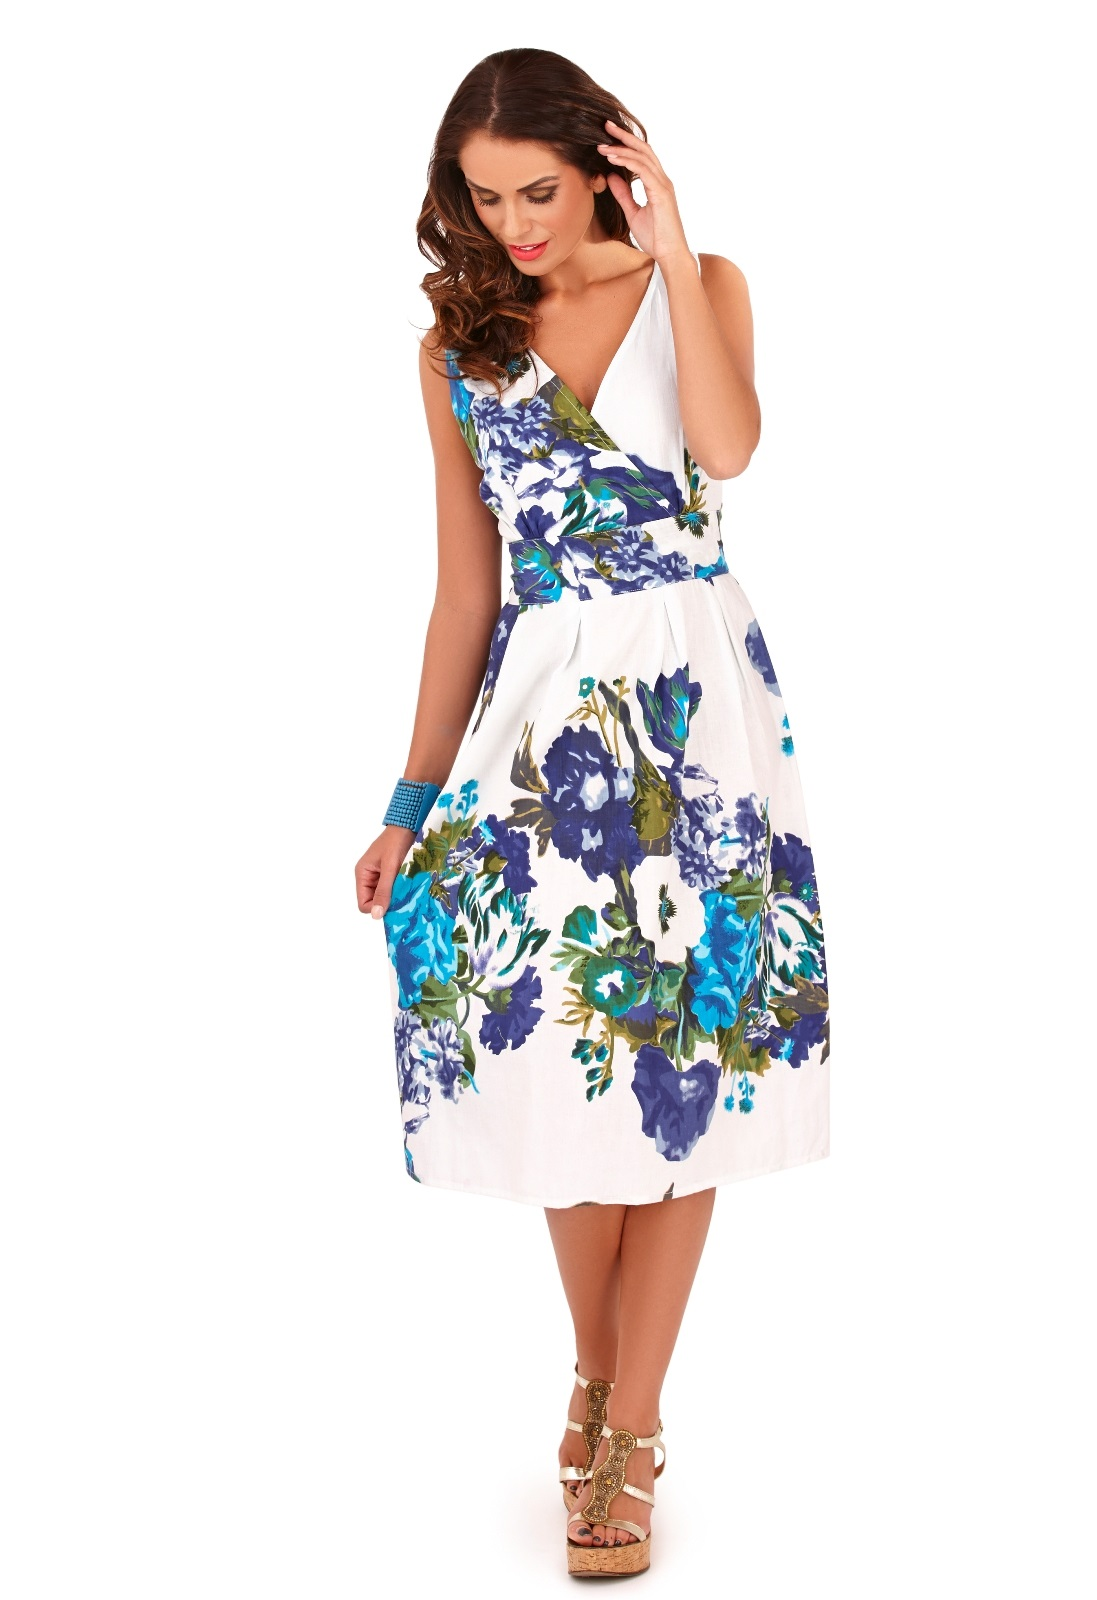 8f0d13771bf Womens Dress 100% Cotton Floral Summer Dress Mid Knee Length Ladies ...